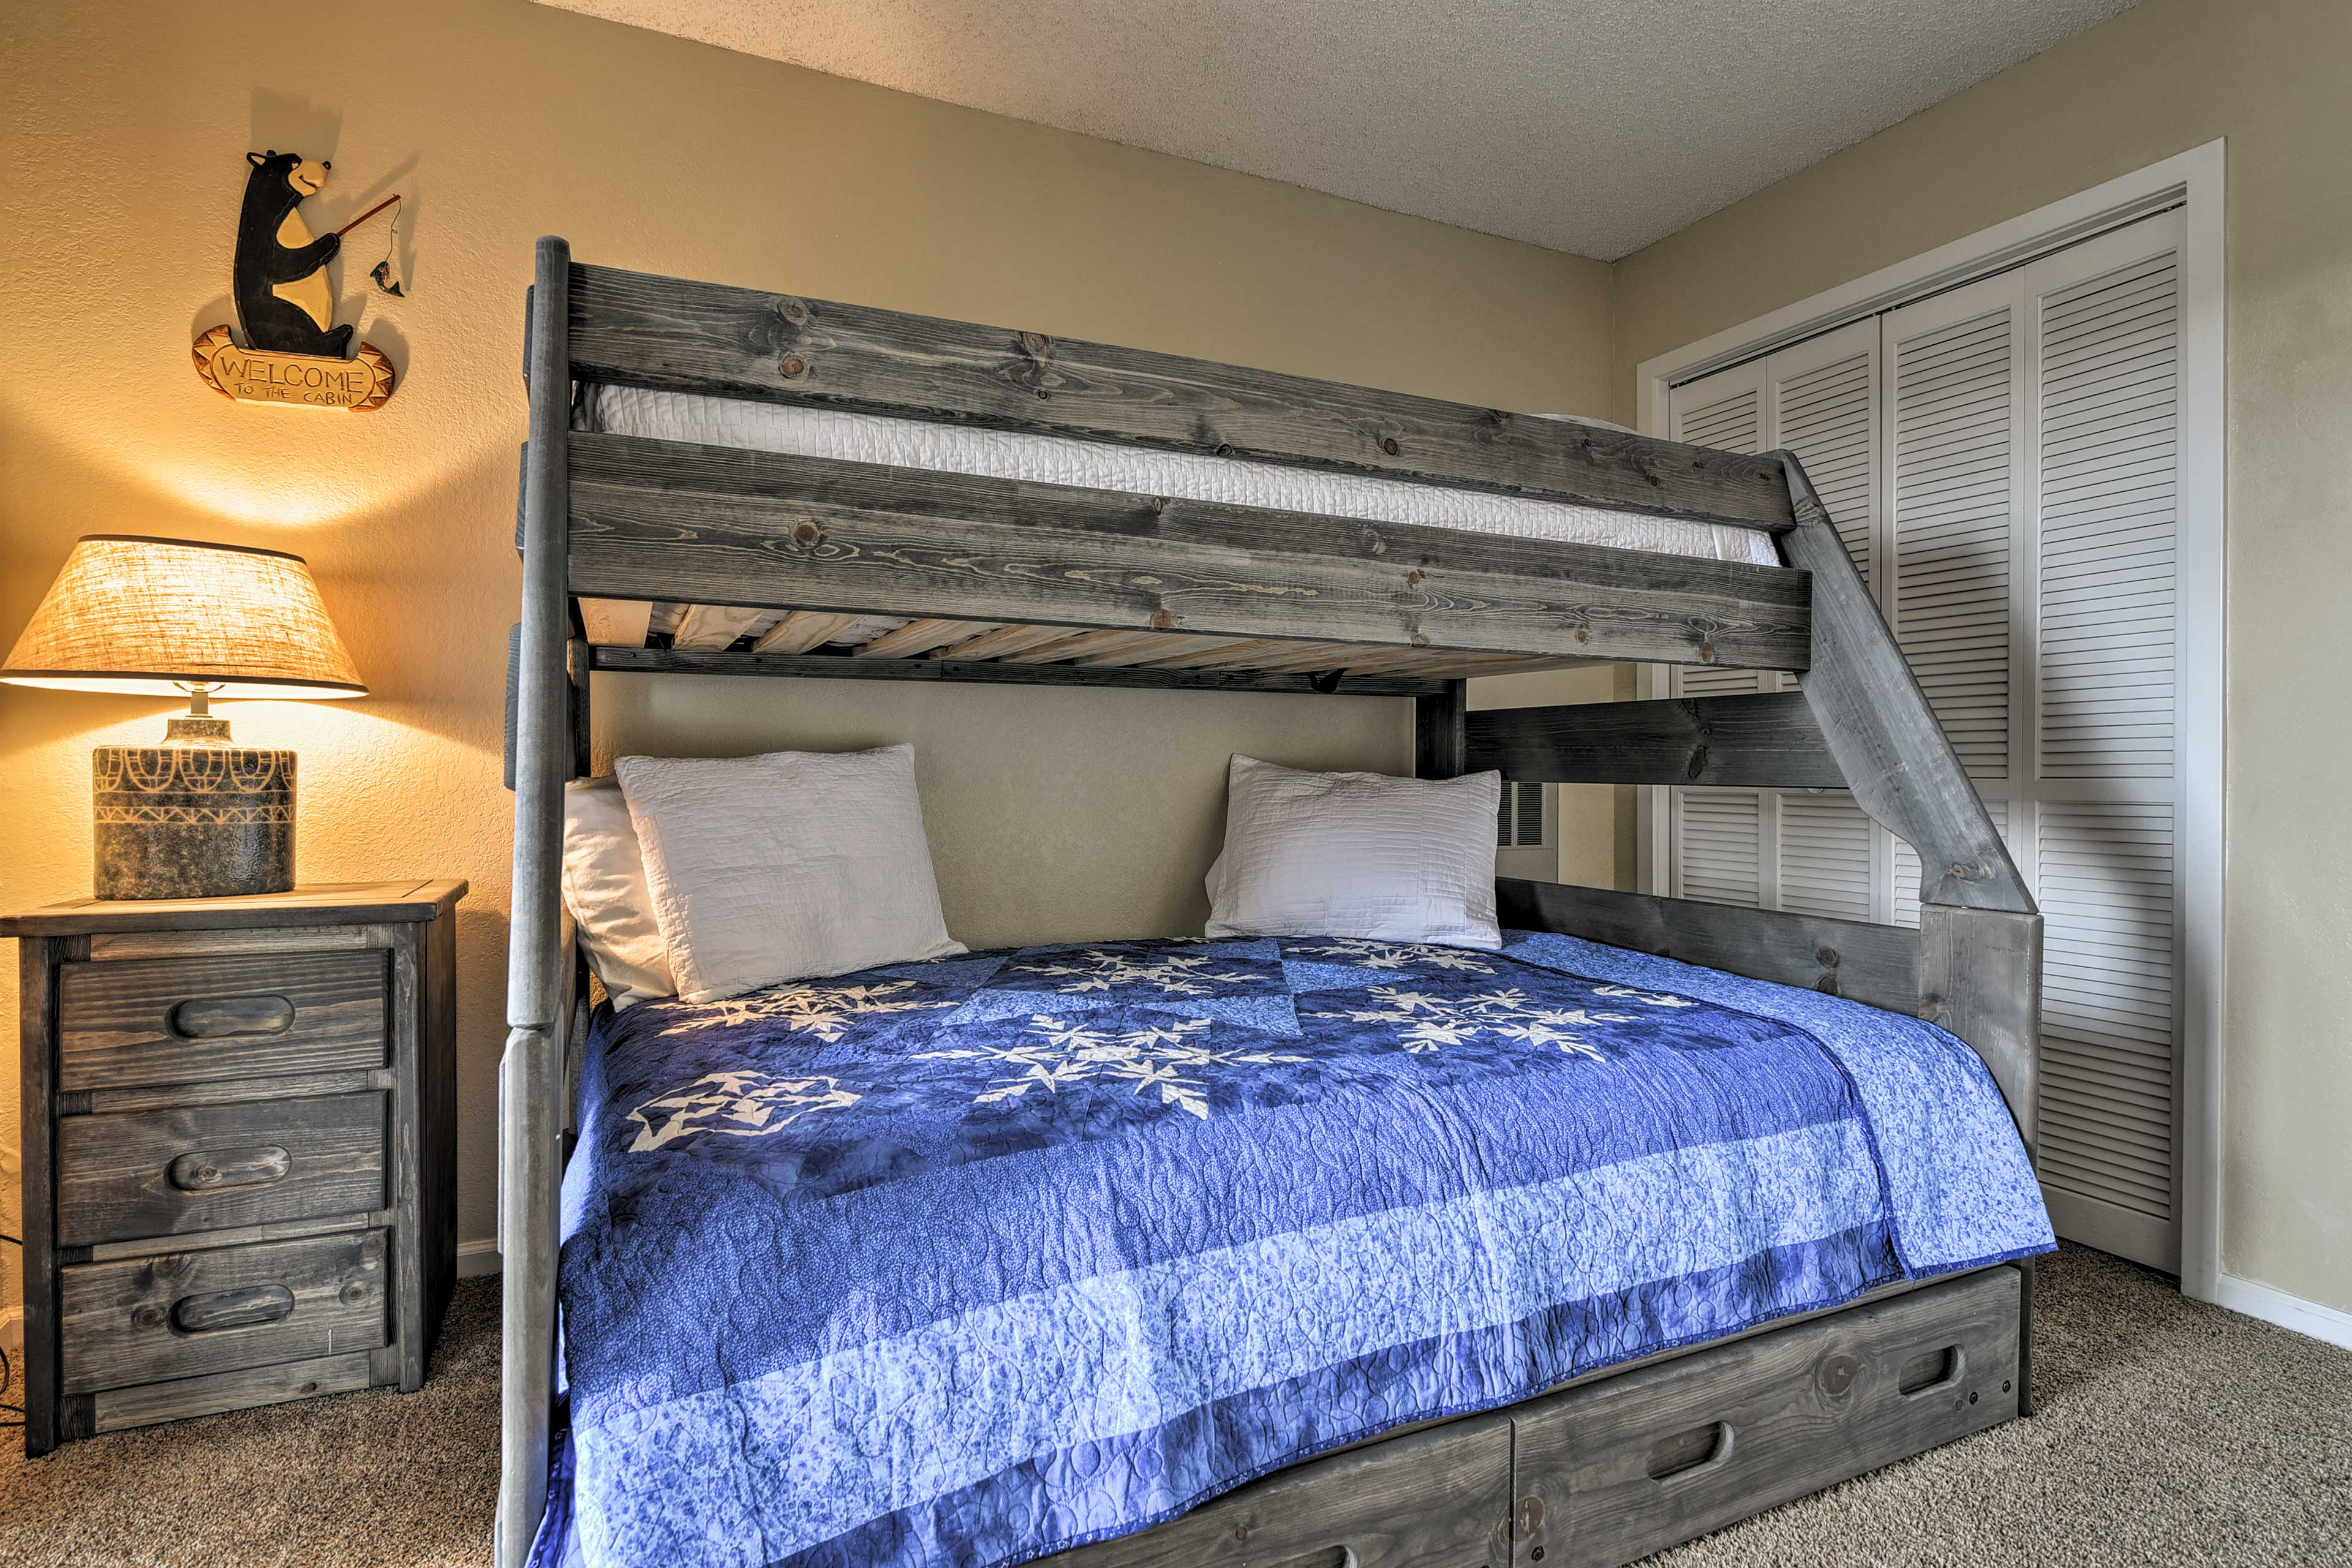 Use the DVD player to watch movies from the twin-over-full bunk bed.